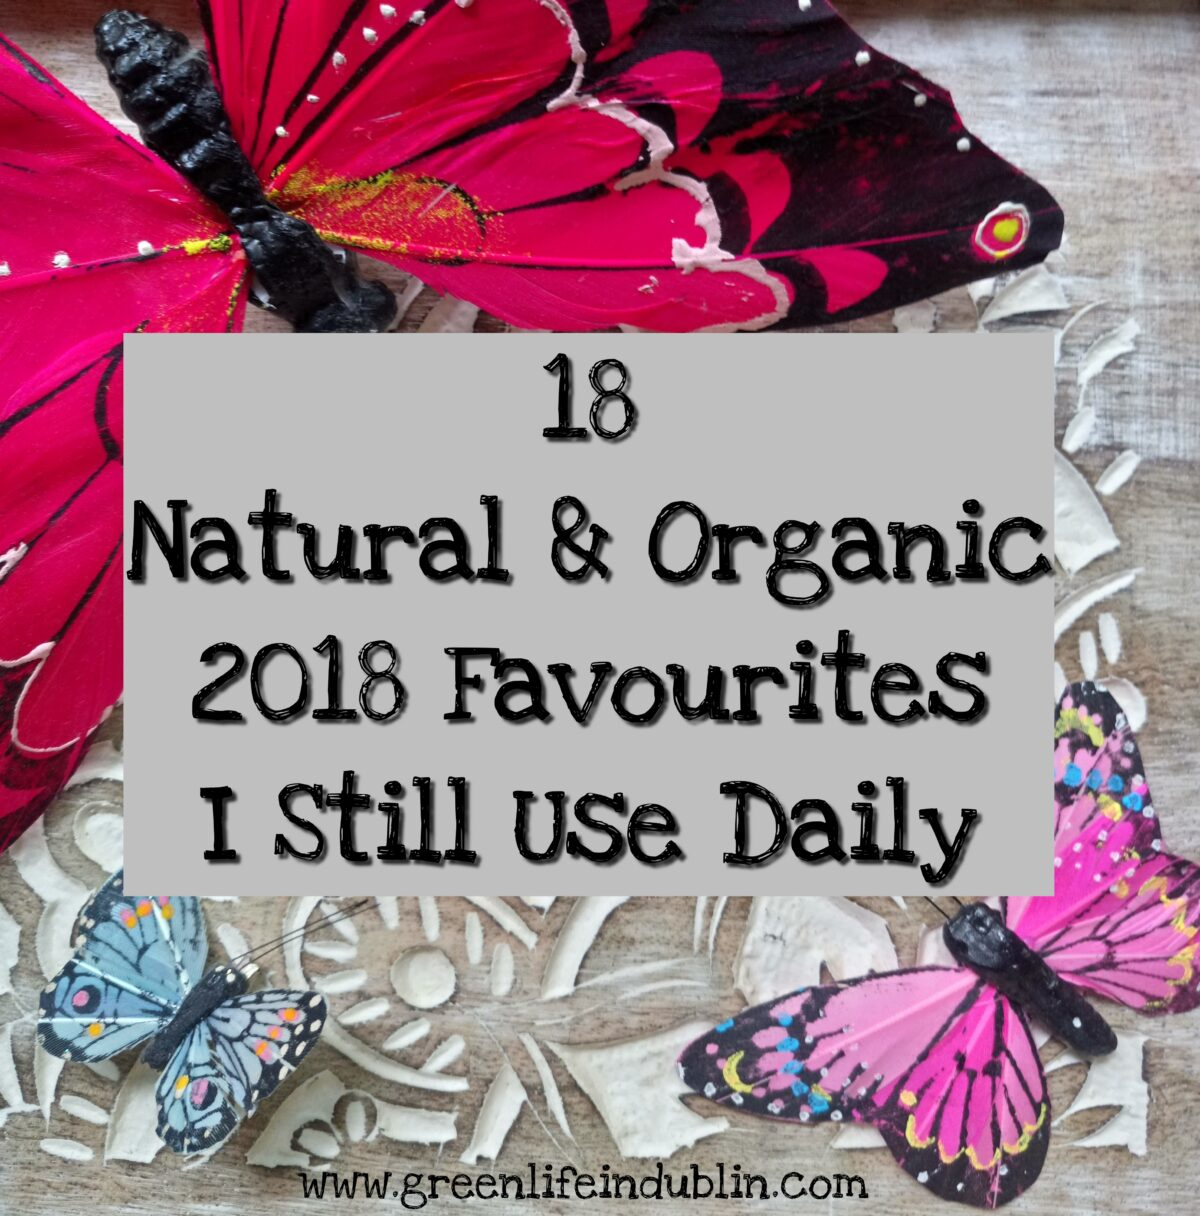 18 Natural & Organic 2018 Favourites I Still Use Daily